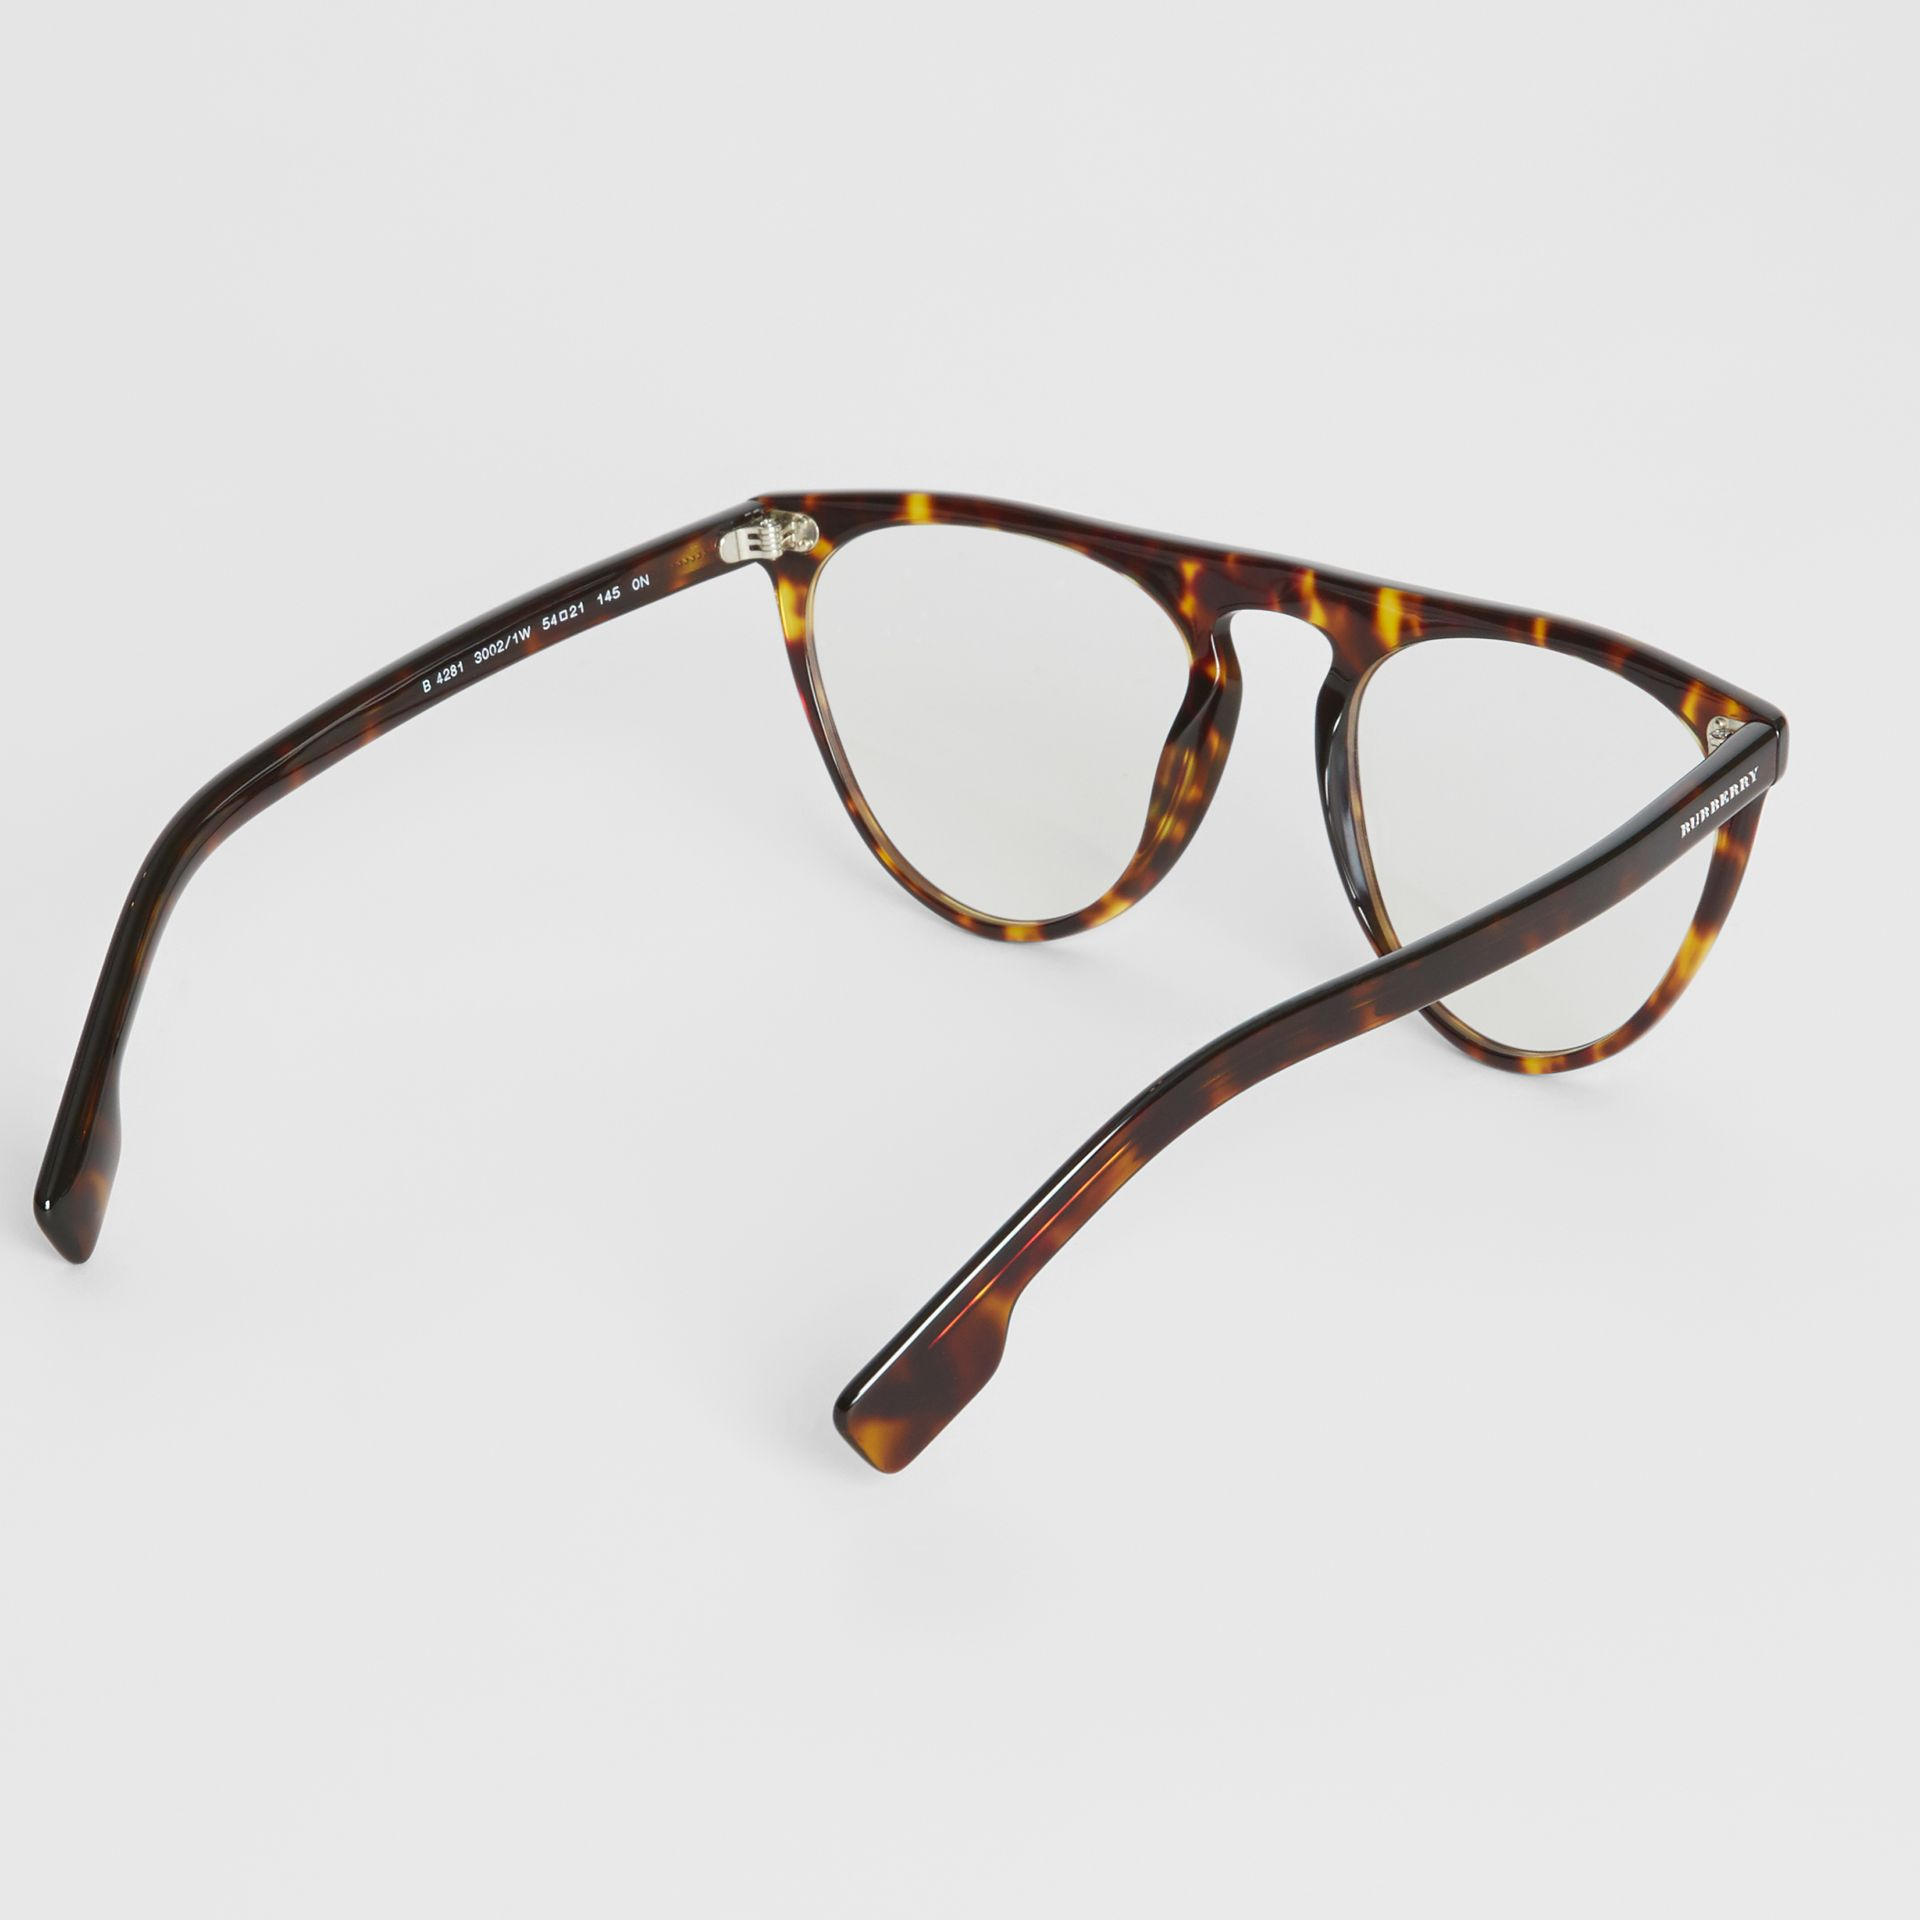 Keyhole D-shaped Optical Frames in Tortoise Shell - Men | Burberry Hong Kong - gallery image 4